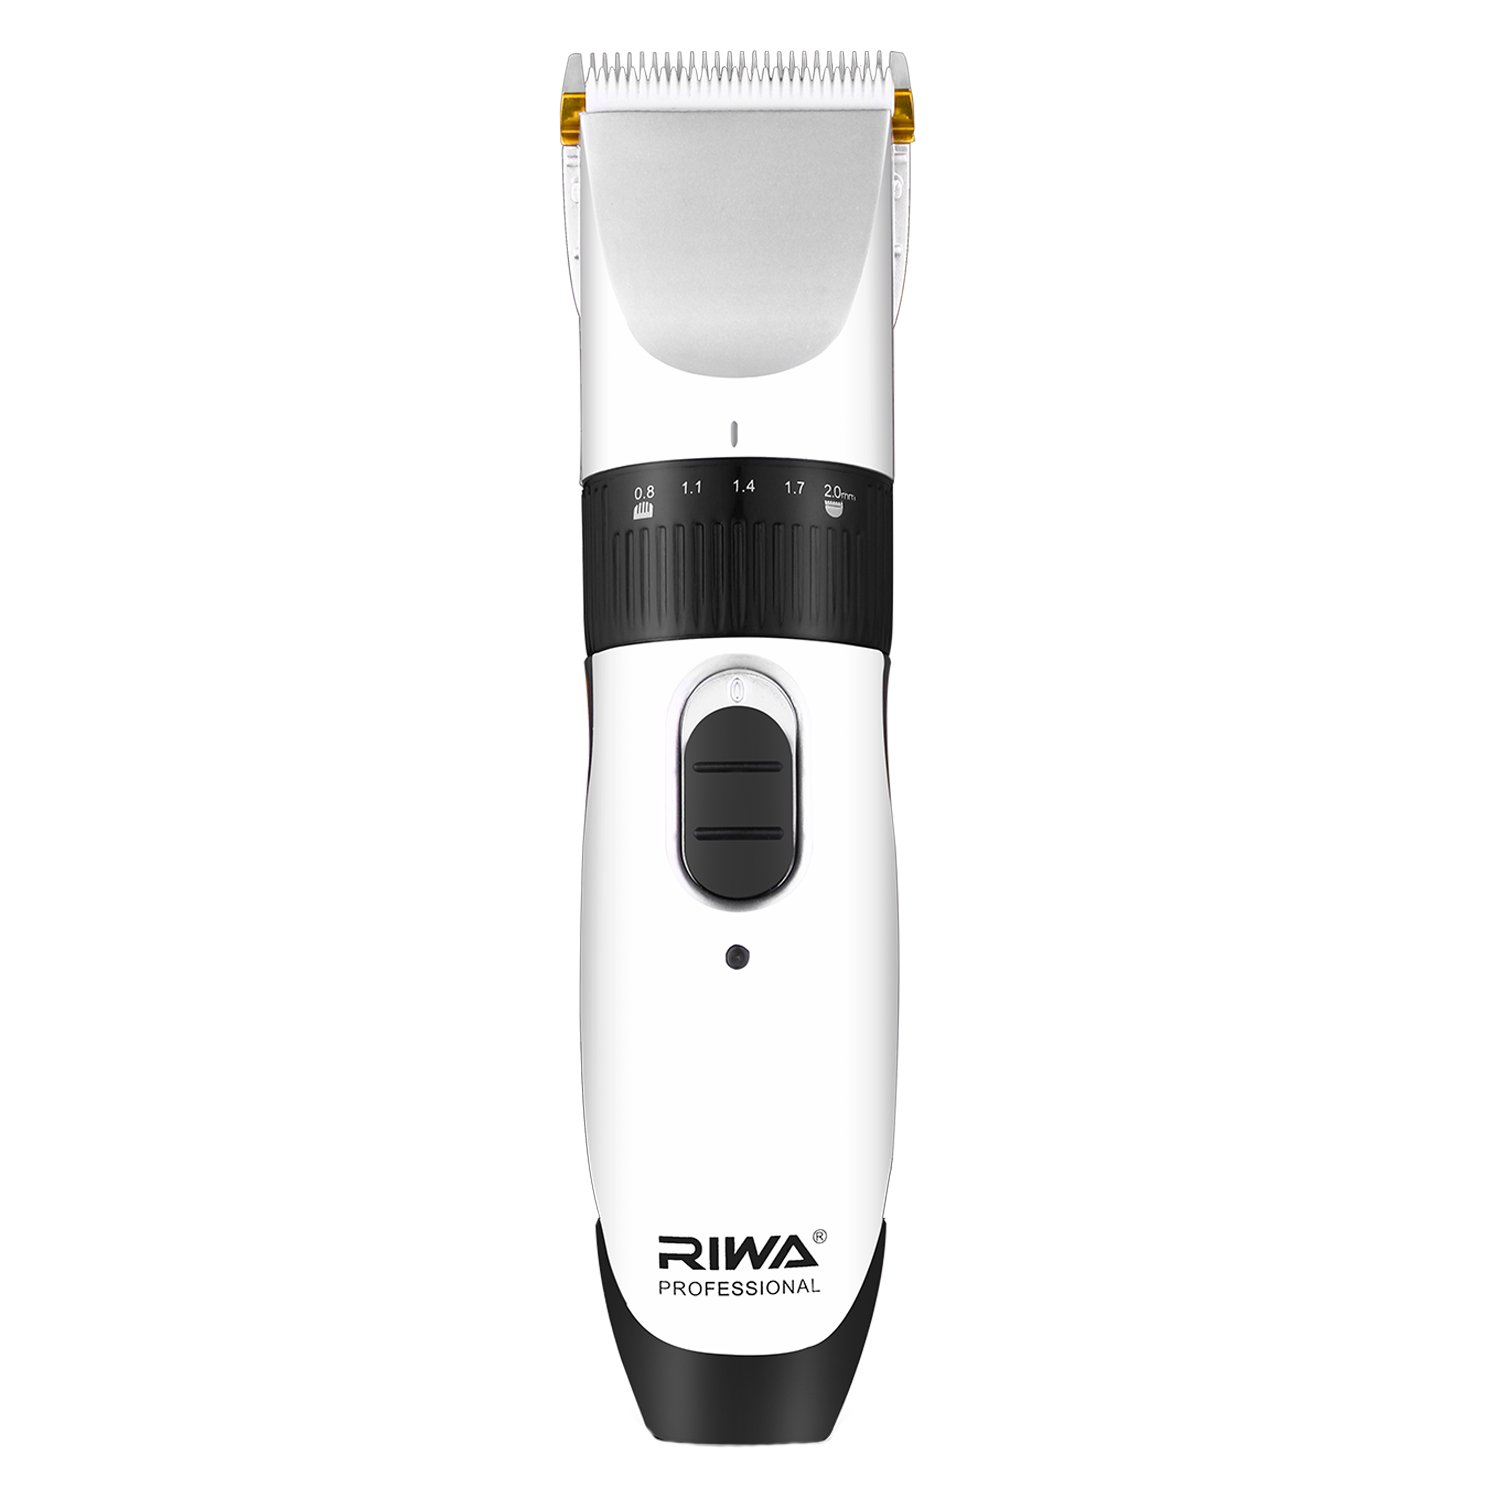 Riwa RE-539C Electric Hair Clipper, Cordless/Corded Hair Cutting Kit Beard Trimmer with 2 Back-up Batteries